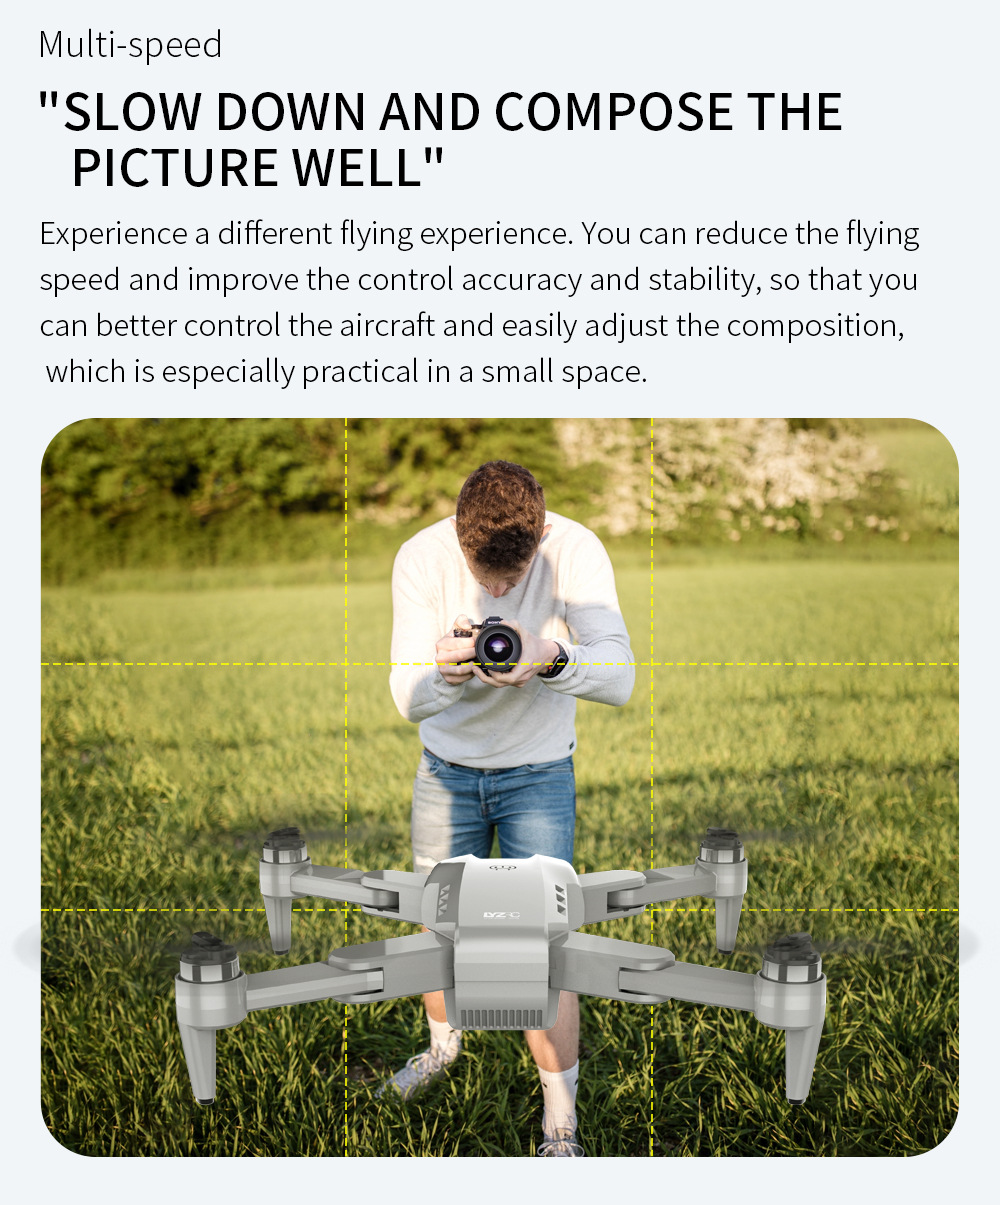 H43d279af04a14ccfaf6a5e24d217cda6J - L900 Pro Drones 4K HD Dual Camera GPS 5G WIFI FPV Quadcopter Brushless Motor Rc Distance 1.2km Transmission Helicopter Toys